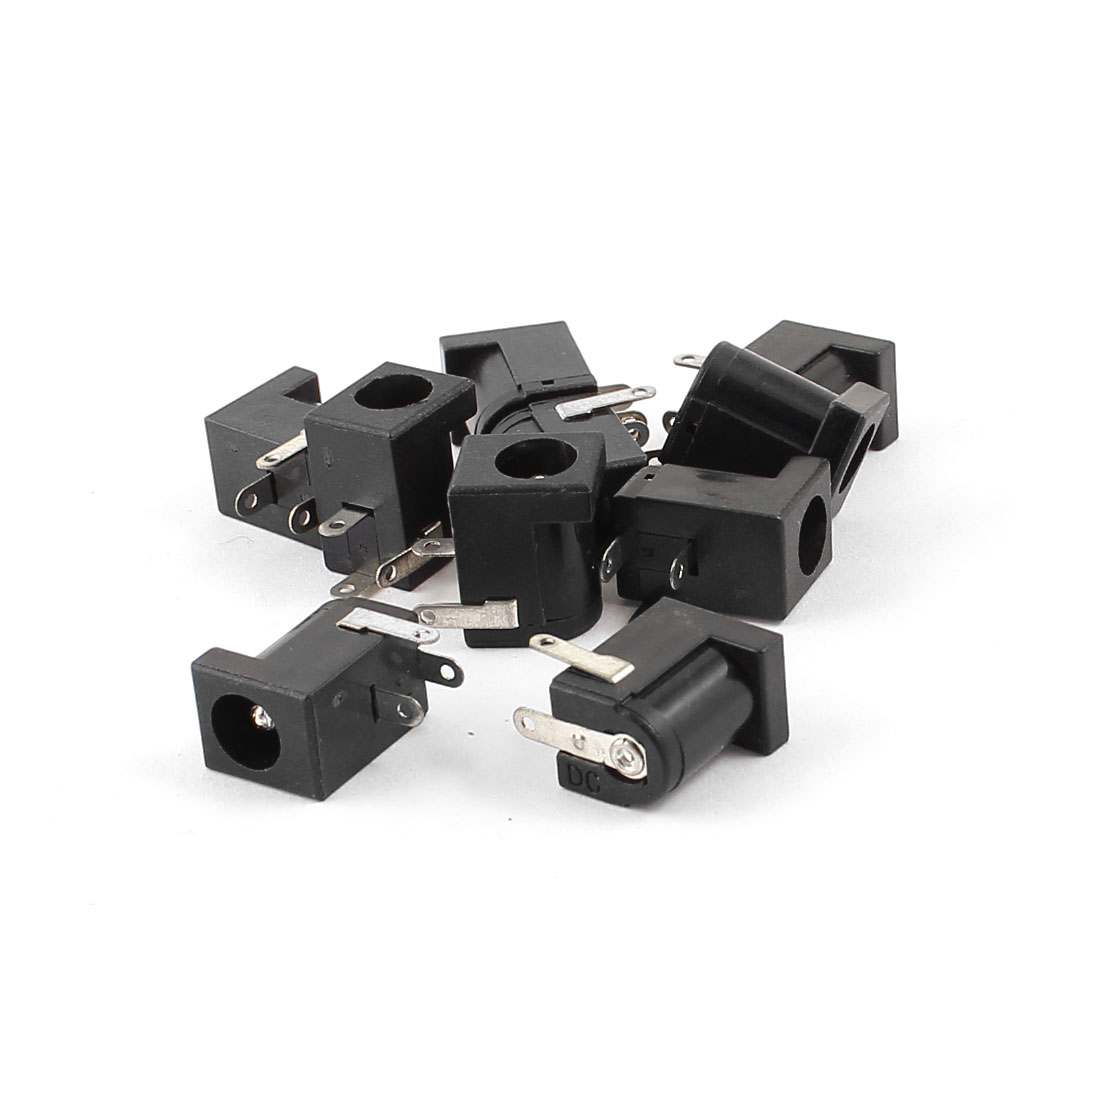 10pcs Black 3 Pole 2.5mmx5.5mm DC Power Jack Socket PCB Mount Connector